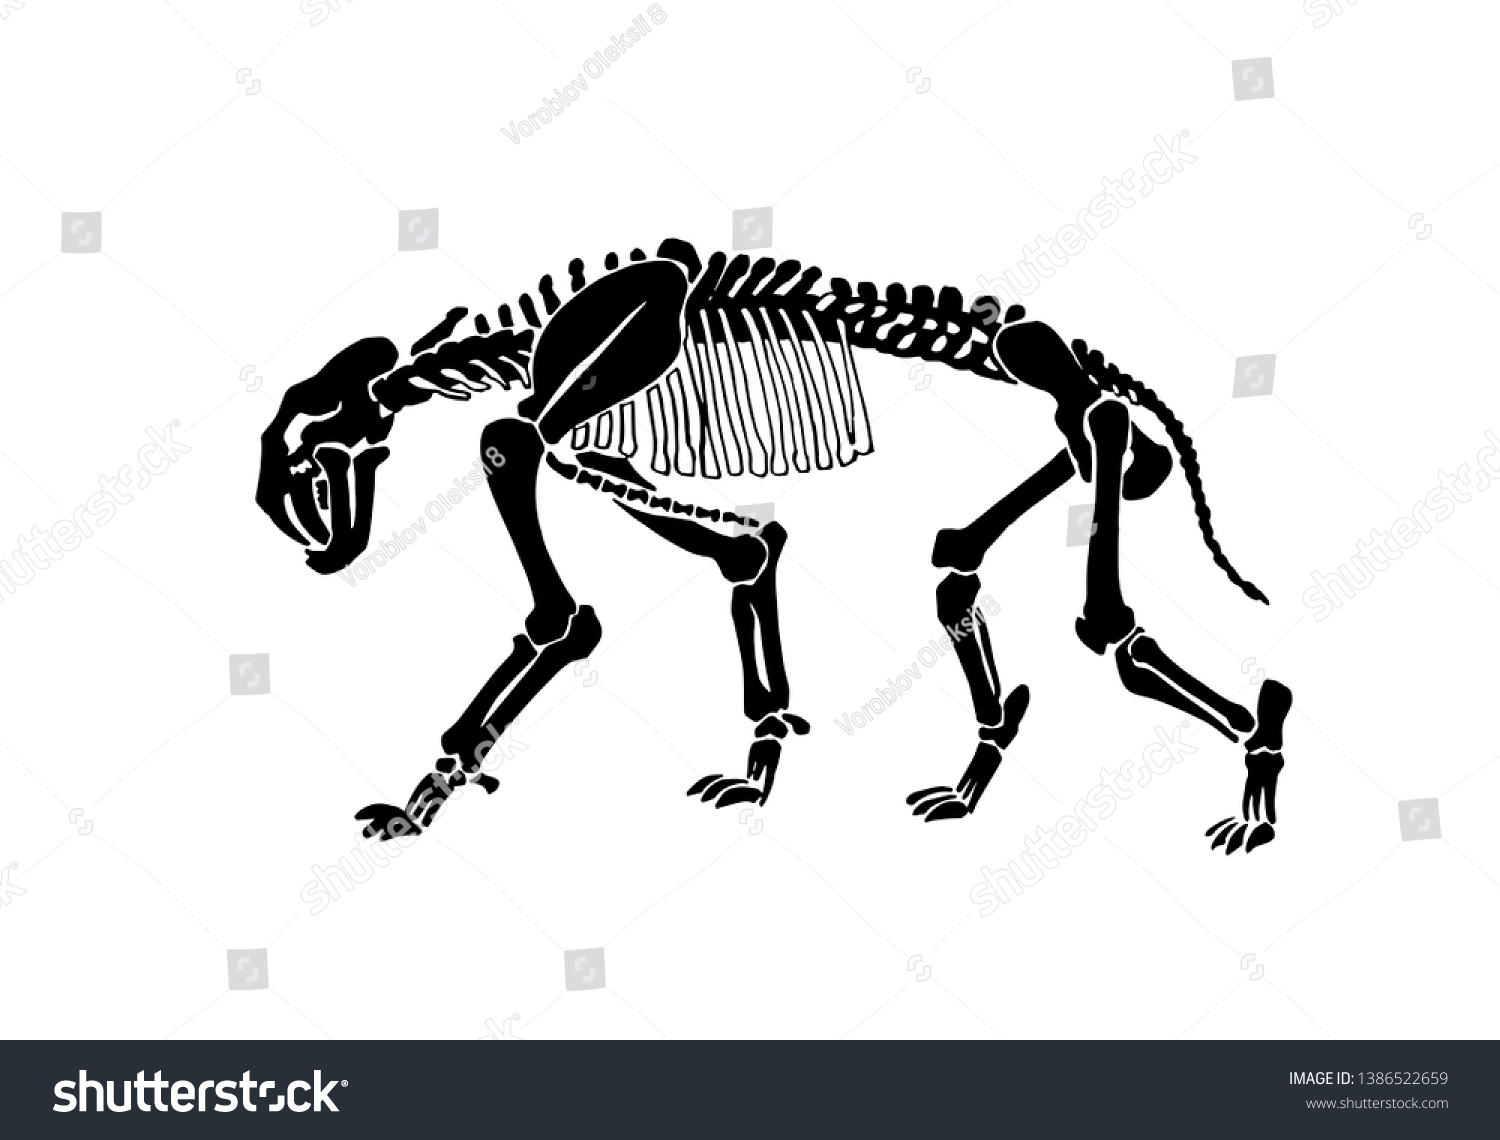 hight resolution of graphical skeleton of saber toothed tiger on white background vector illustration anthropology